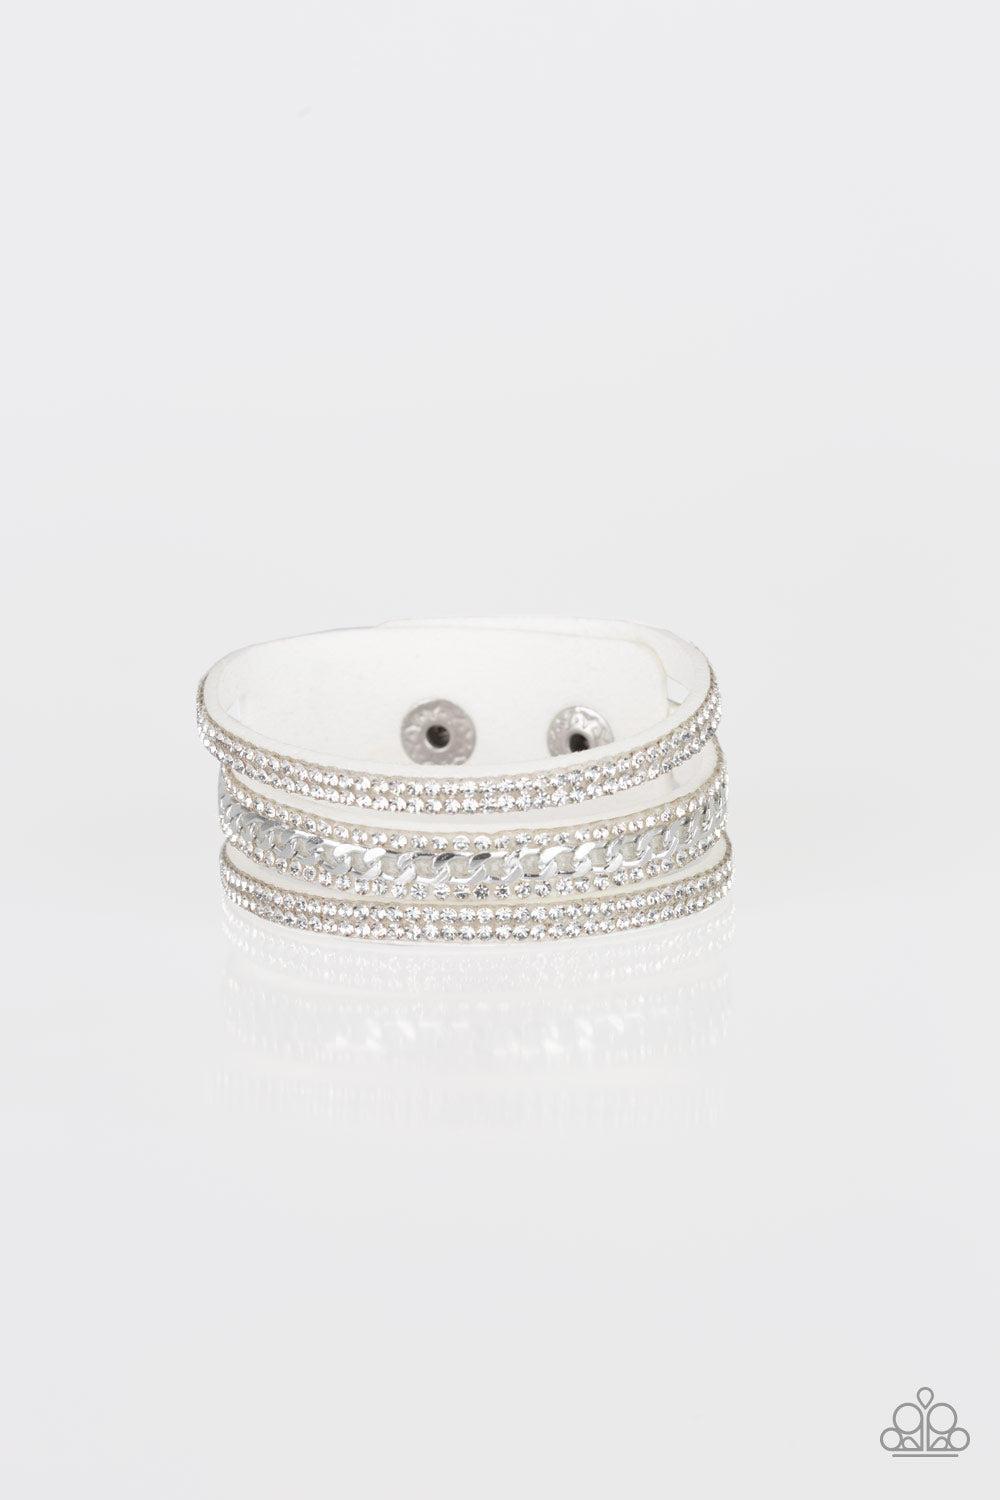 Paparazzi Rollin' In Rhinestones White Single Wrap Snap Bracelet